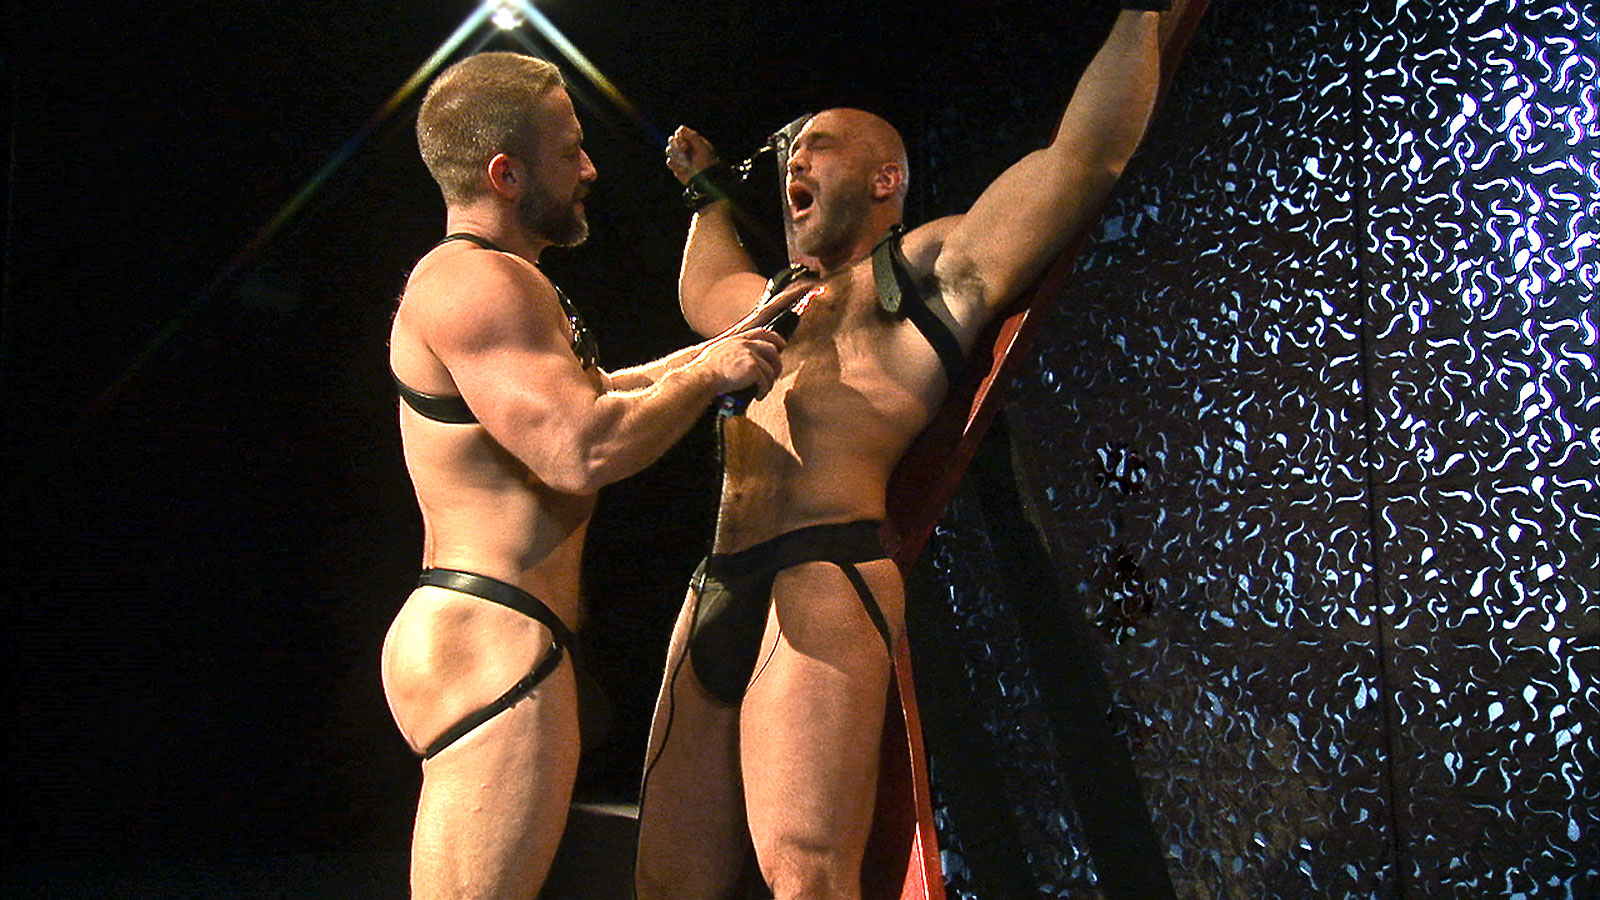 naked boy cross bondage TitanMen Exclusive Loud and Nasty – Dirk Caber and Jesse Jackman